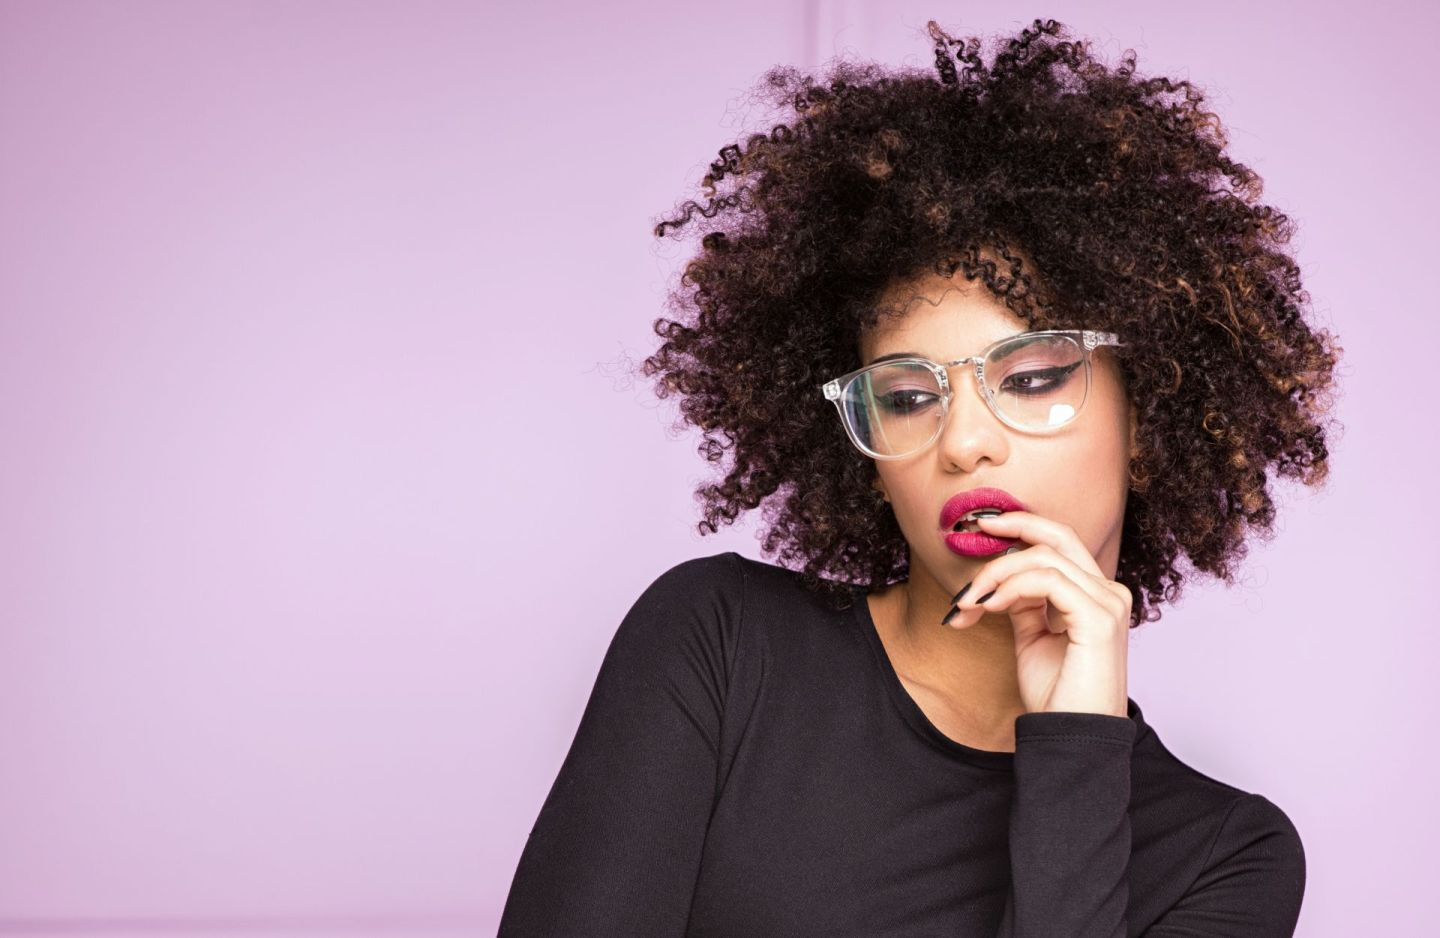 Best Spring hair tips are here! We are here to get your hair ready for spring and summer so check out our top tips for all naturals!